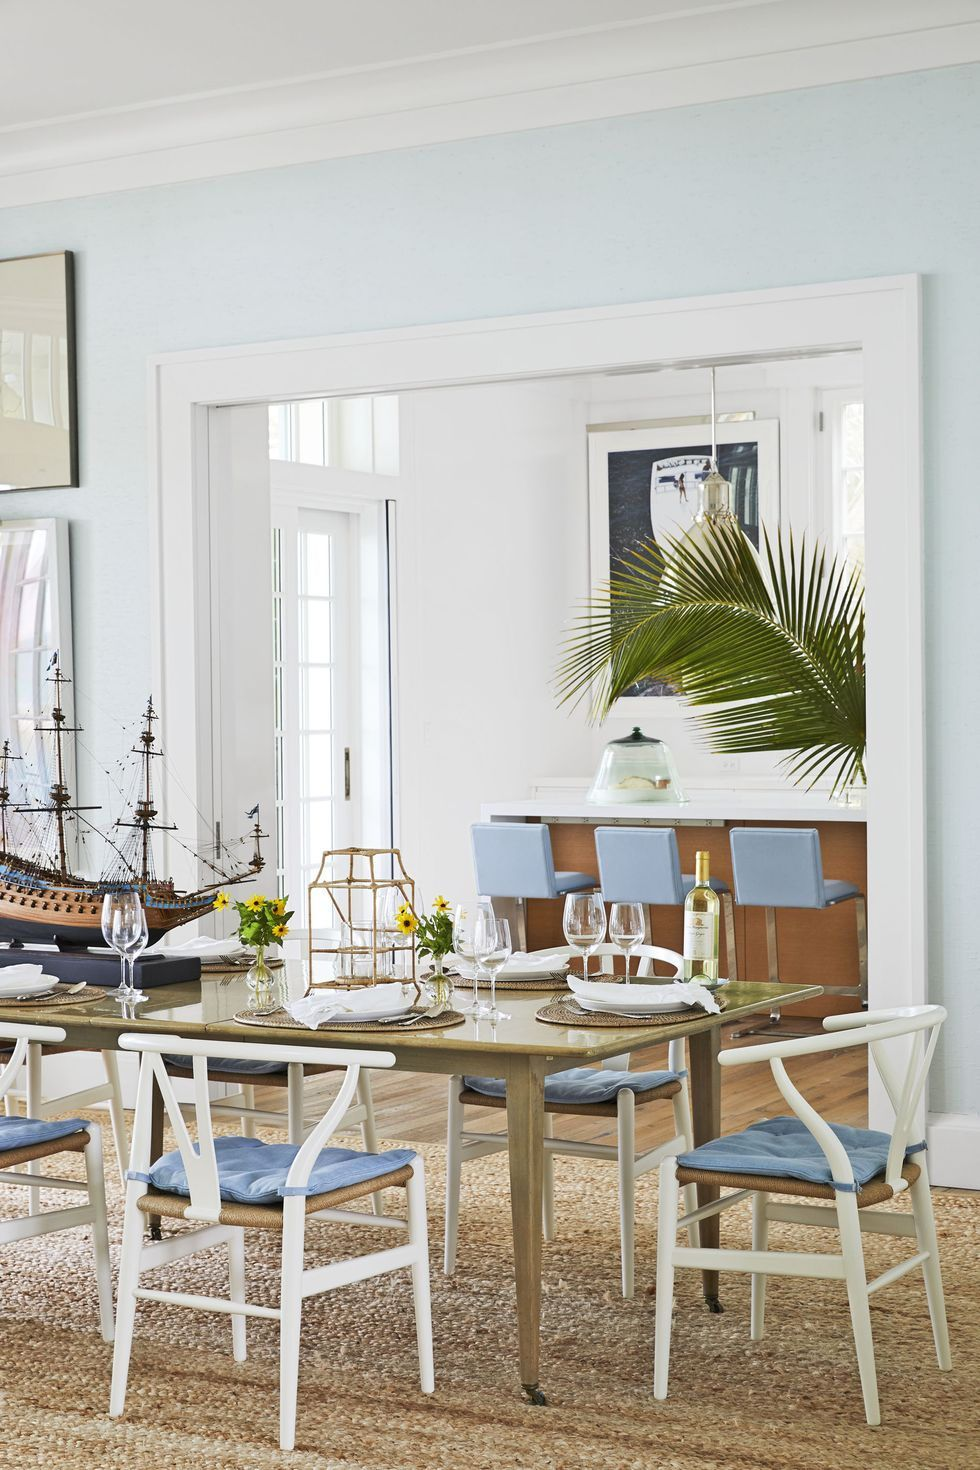 Room Paint Designer: 15 Designer-Approved Paint Colors That Will Take Your